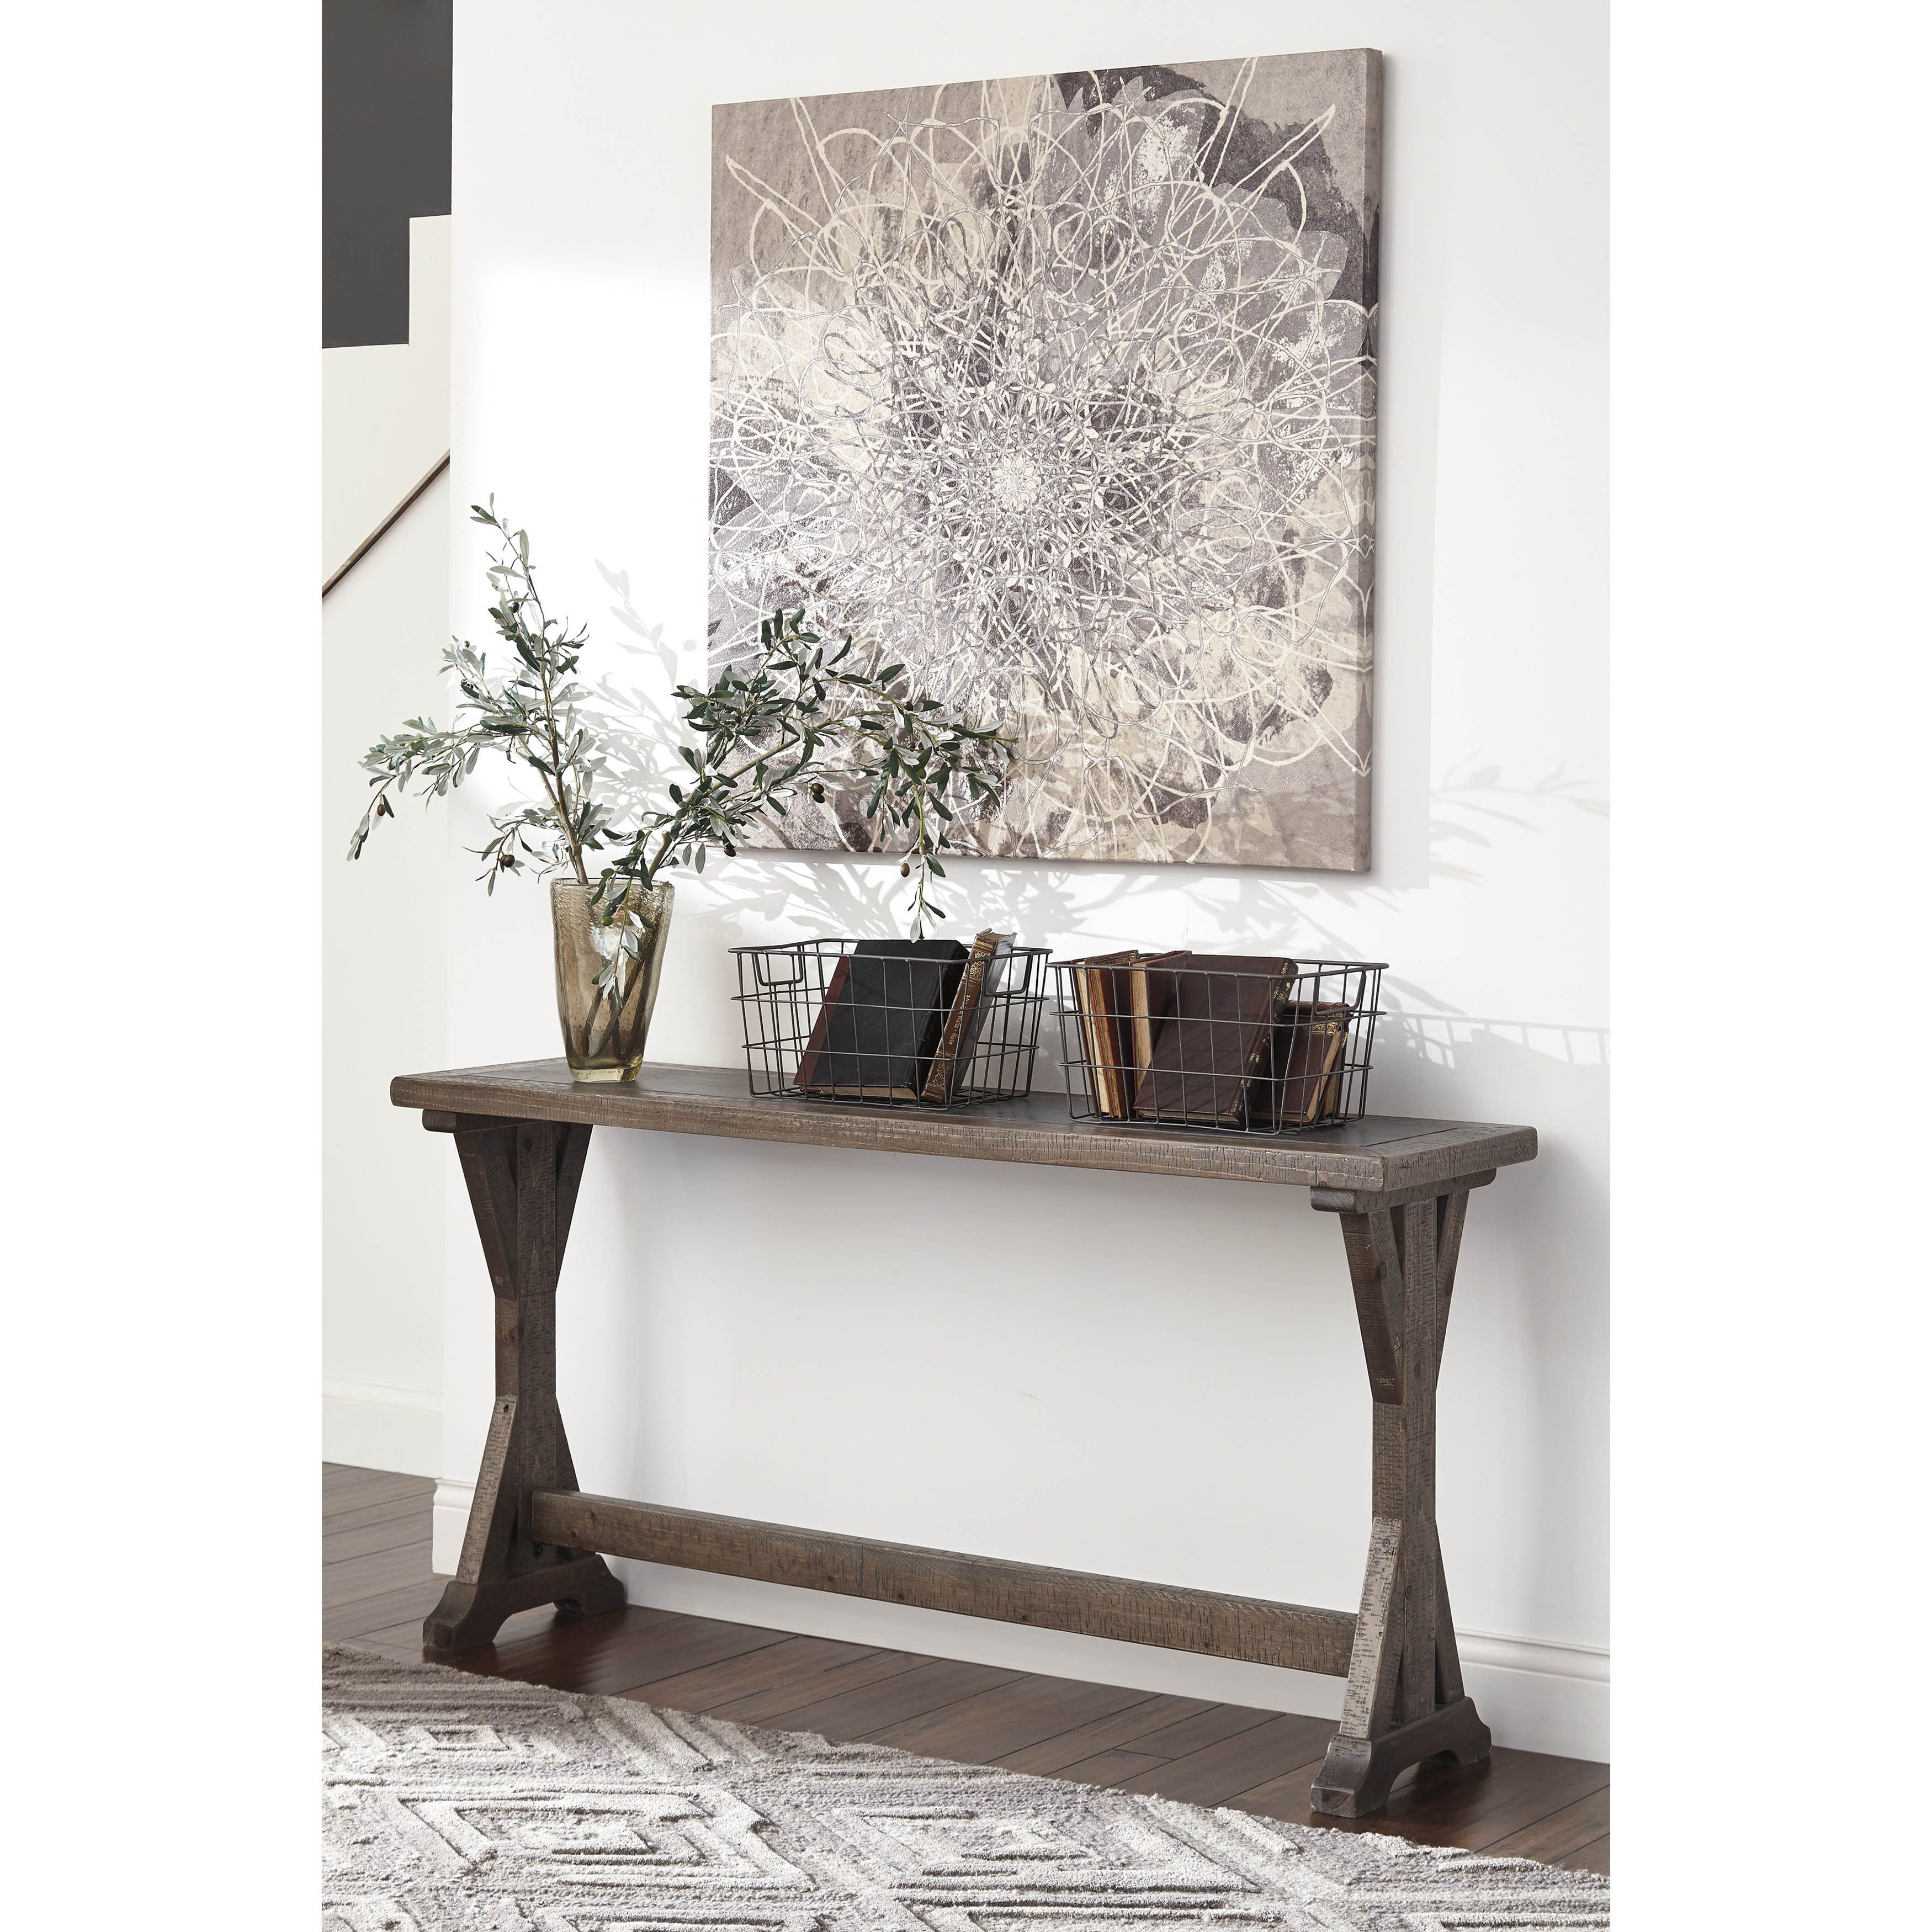 Signature design by ashley valkner grayish brown sofa table by sofa tables geotapseo Images